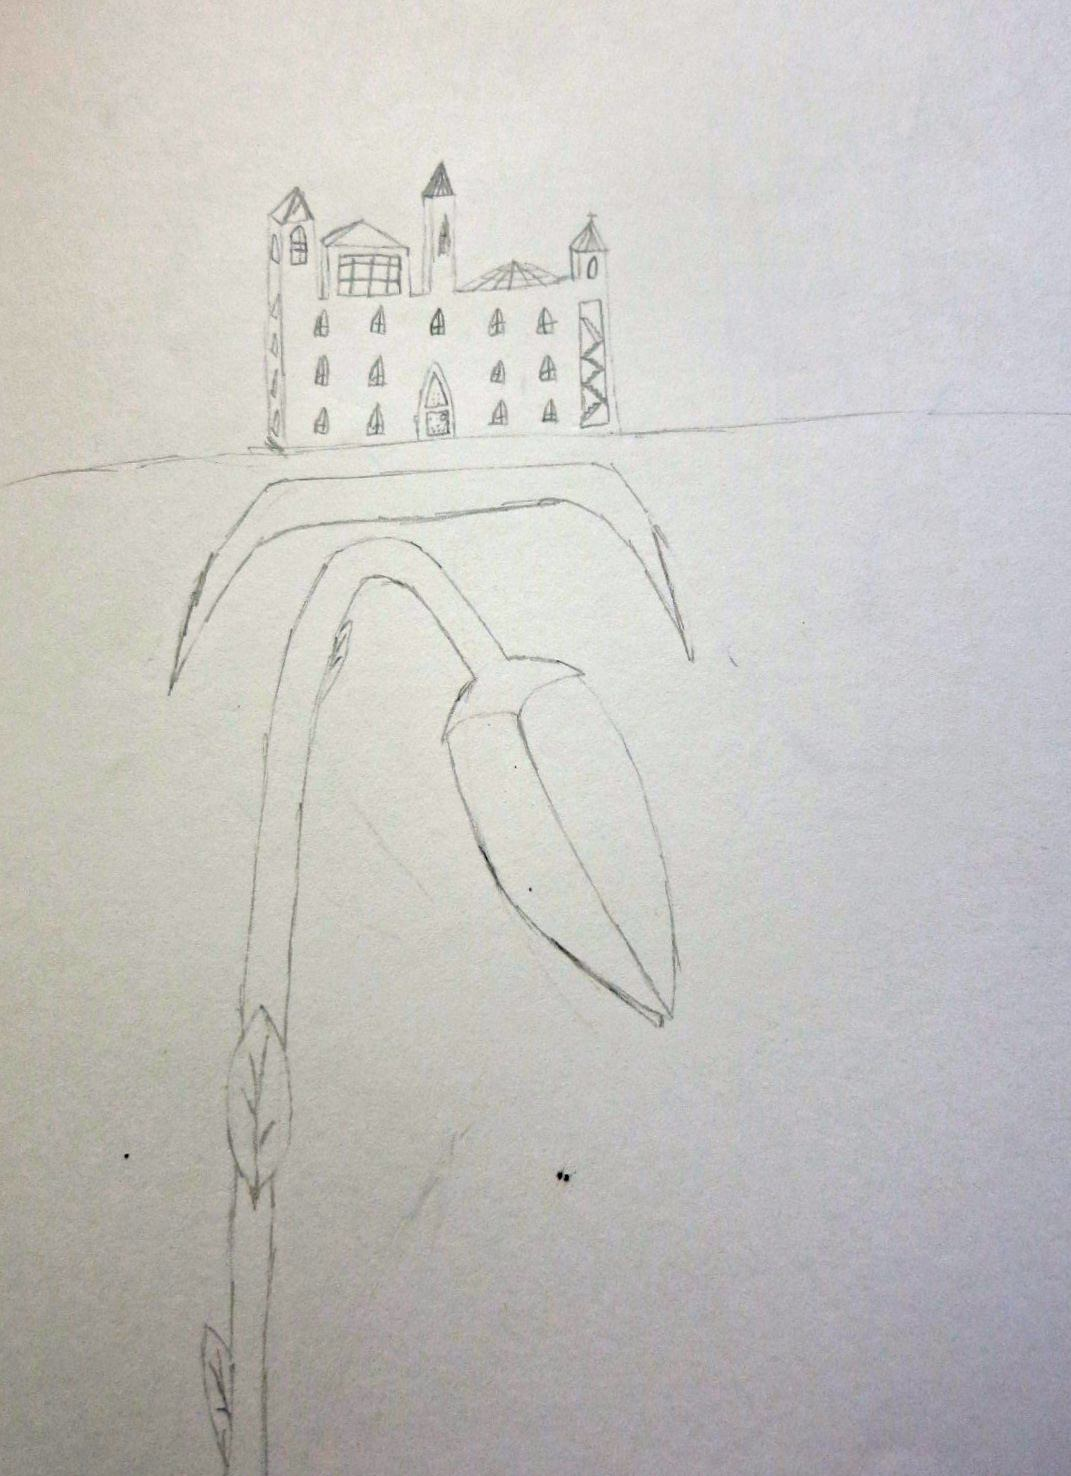 """""""The great grey school is looming above us"""". Illustration by Oliver Knight, Year 8, Sompting Abbotts Preparatory School"""